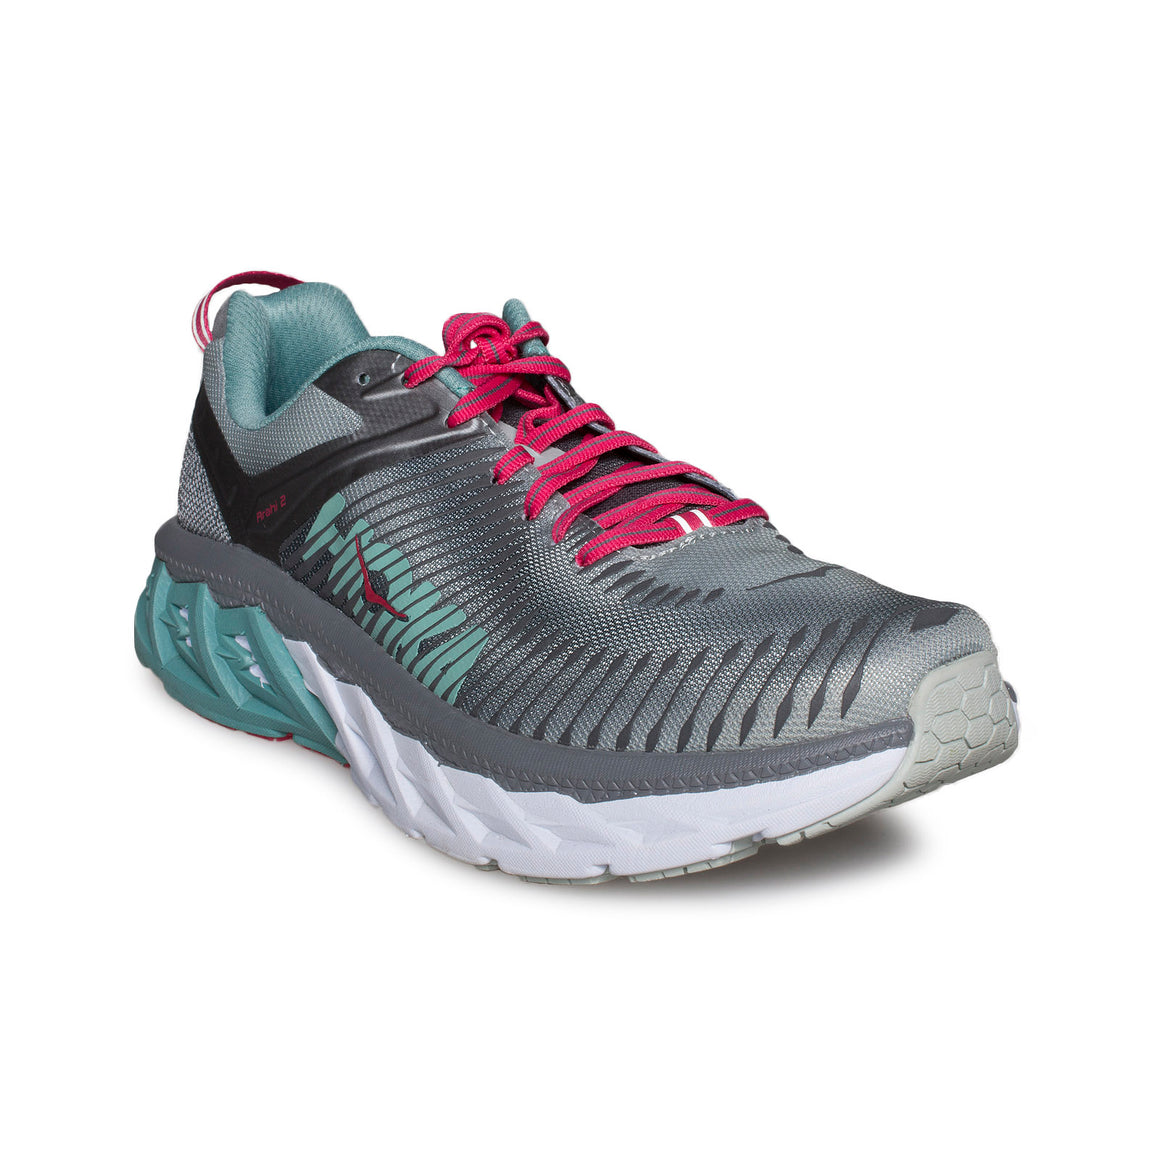 Hoka One One Arahi 2 Steel / Grey Metal Running Shoes - Women's